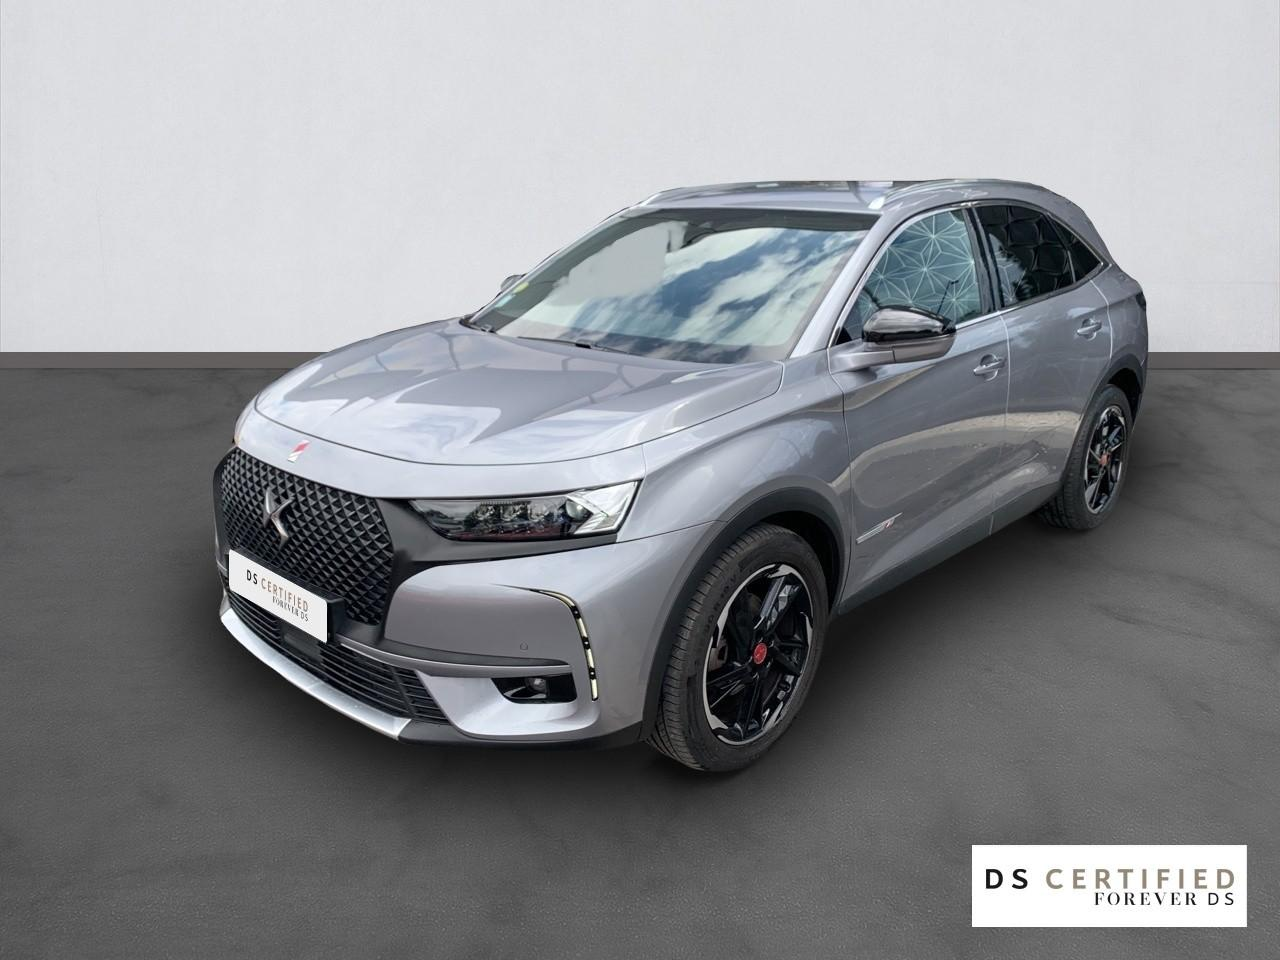 Ds DS 7 Crossback BlueHDi 130ch Drive Efficiency Performance Line